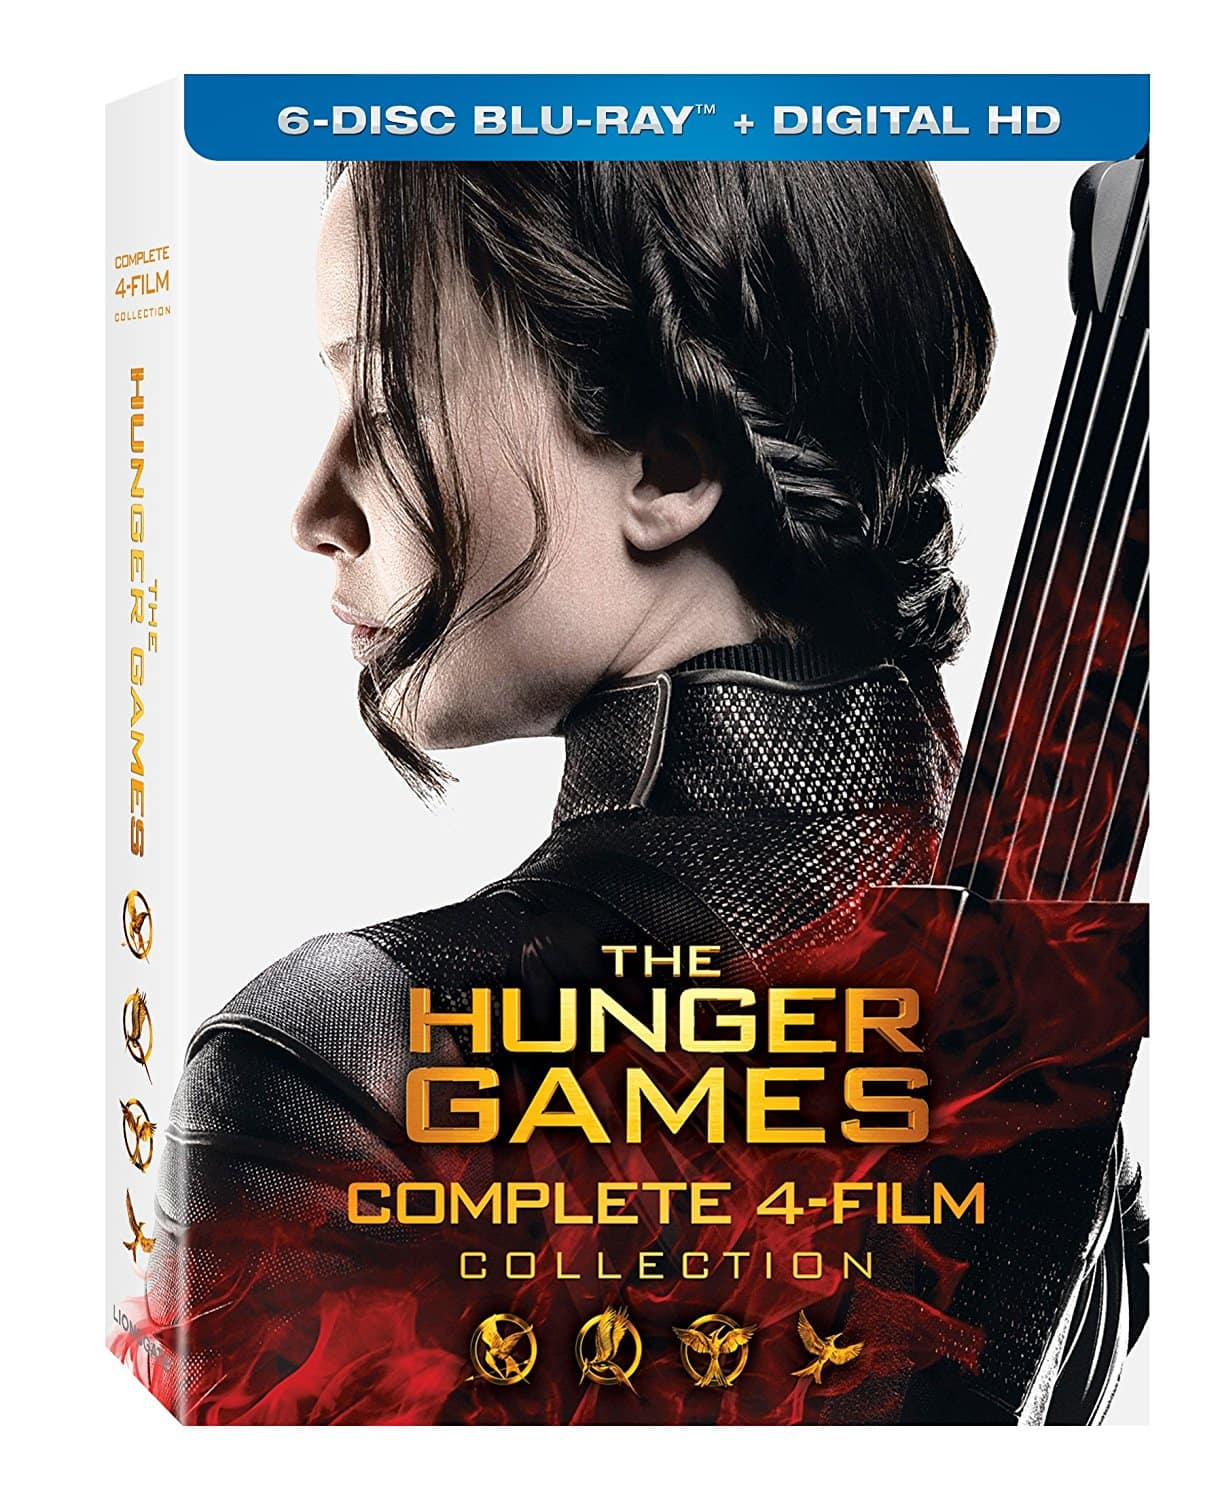 The Hunger Games: Complete 4 Film Collection (6-Disc Blu-Ray + Digital HD) $19.99 via Amazon